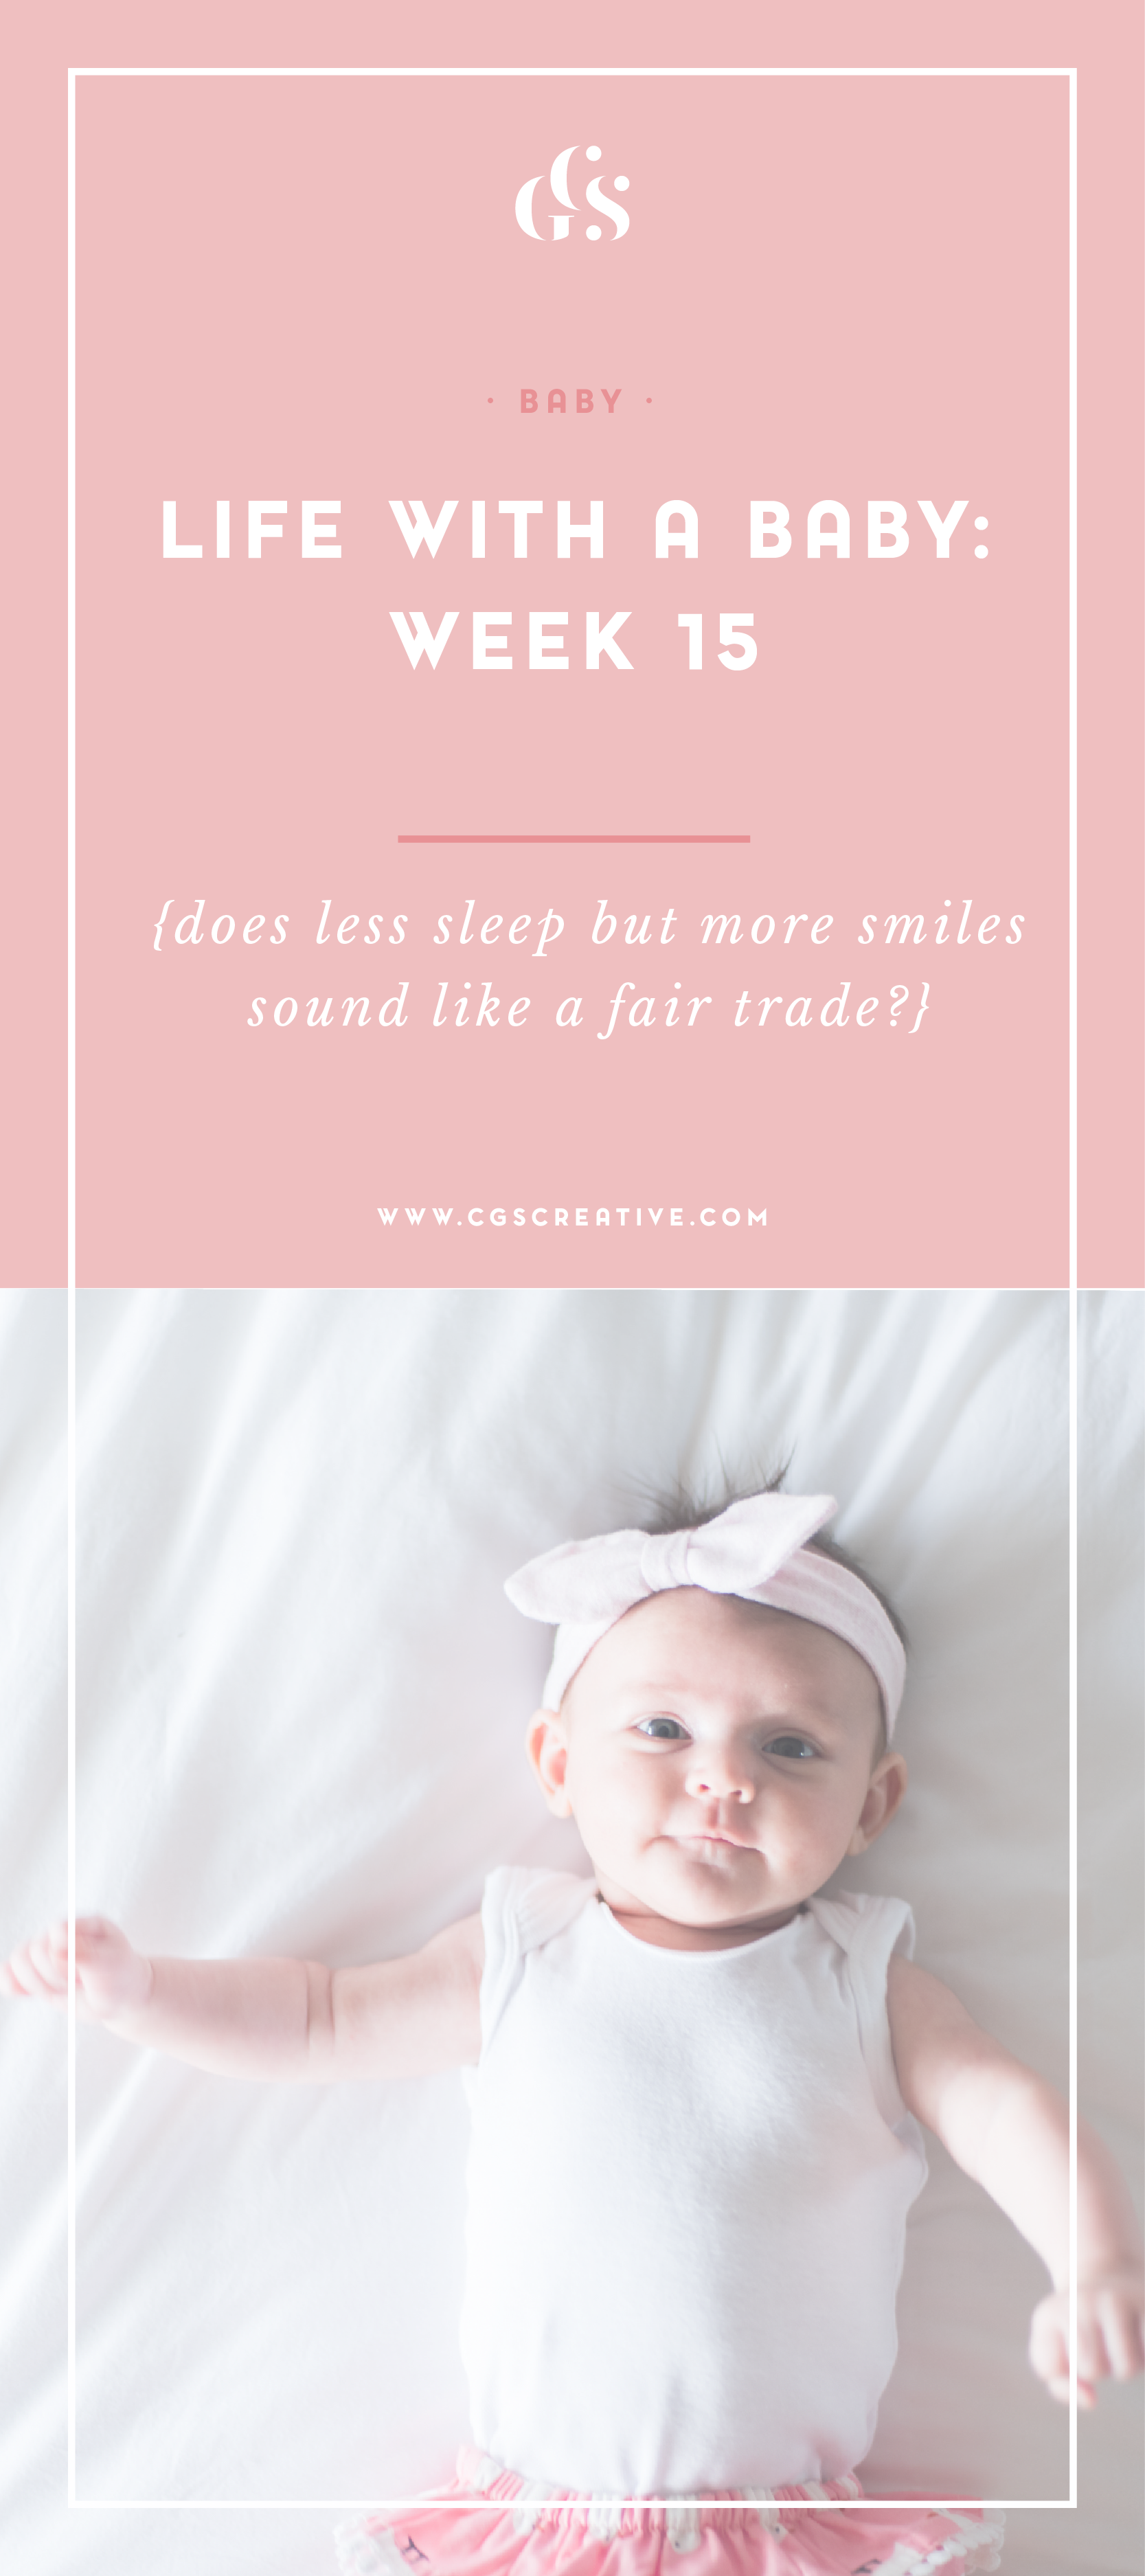 Life with a baby week 15 less sleep but more smiles by CityGirlSearching